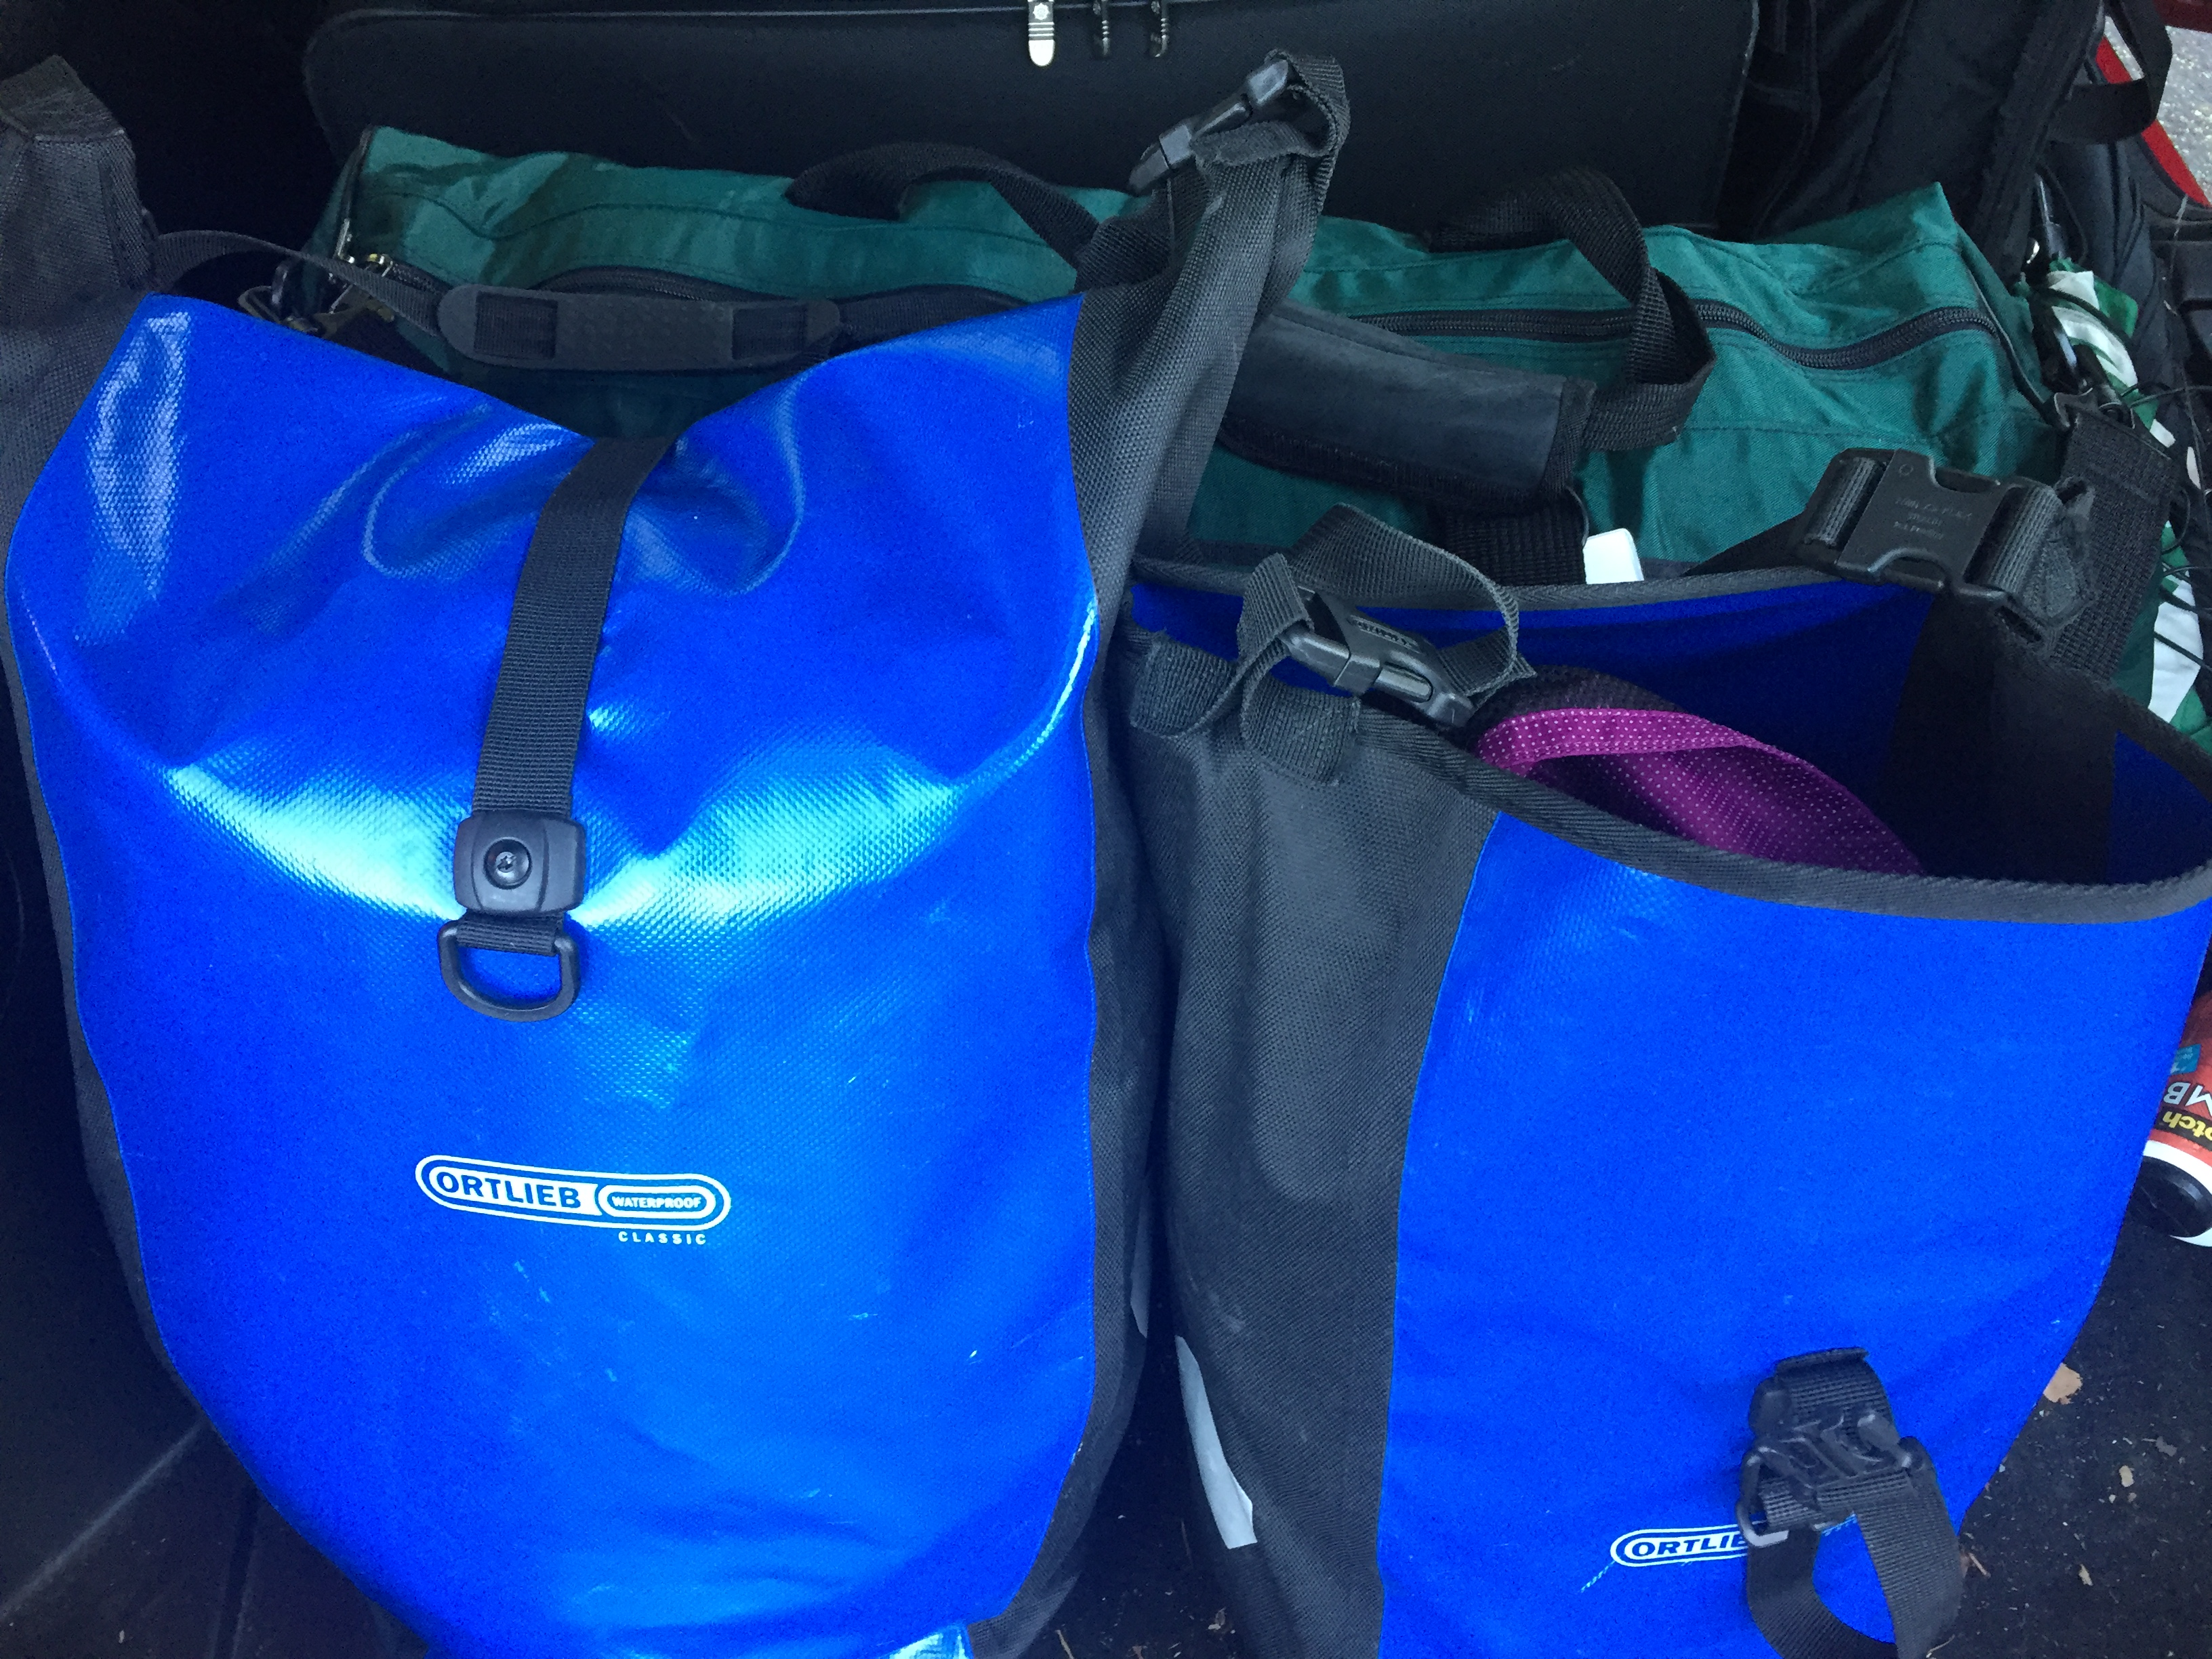 A long, green duffel bag with two blue ortlieb panniers in the foreground.